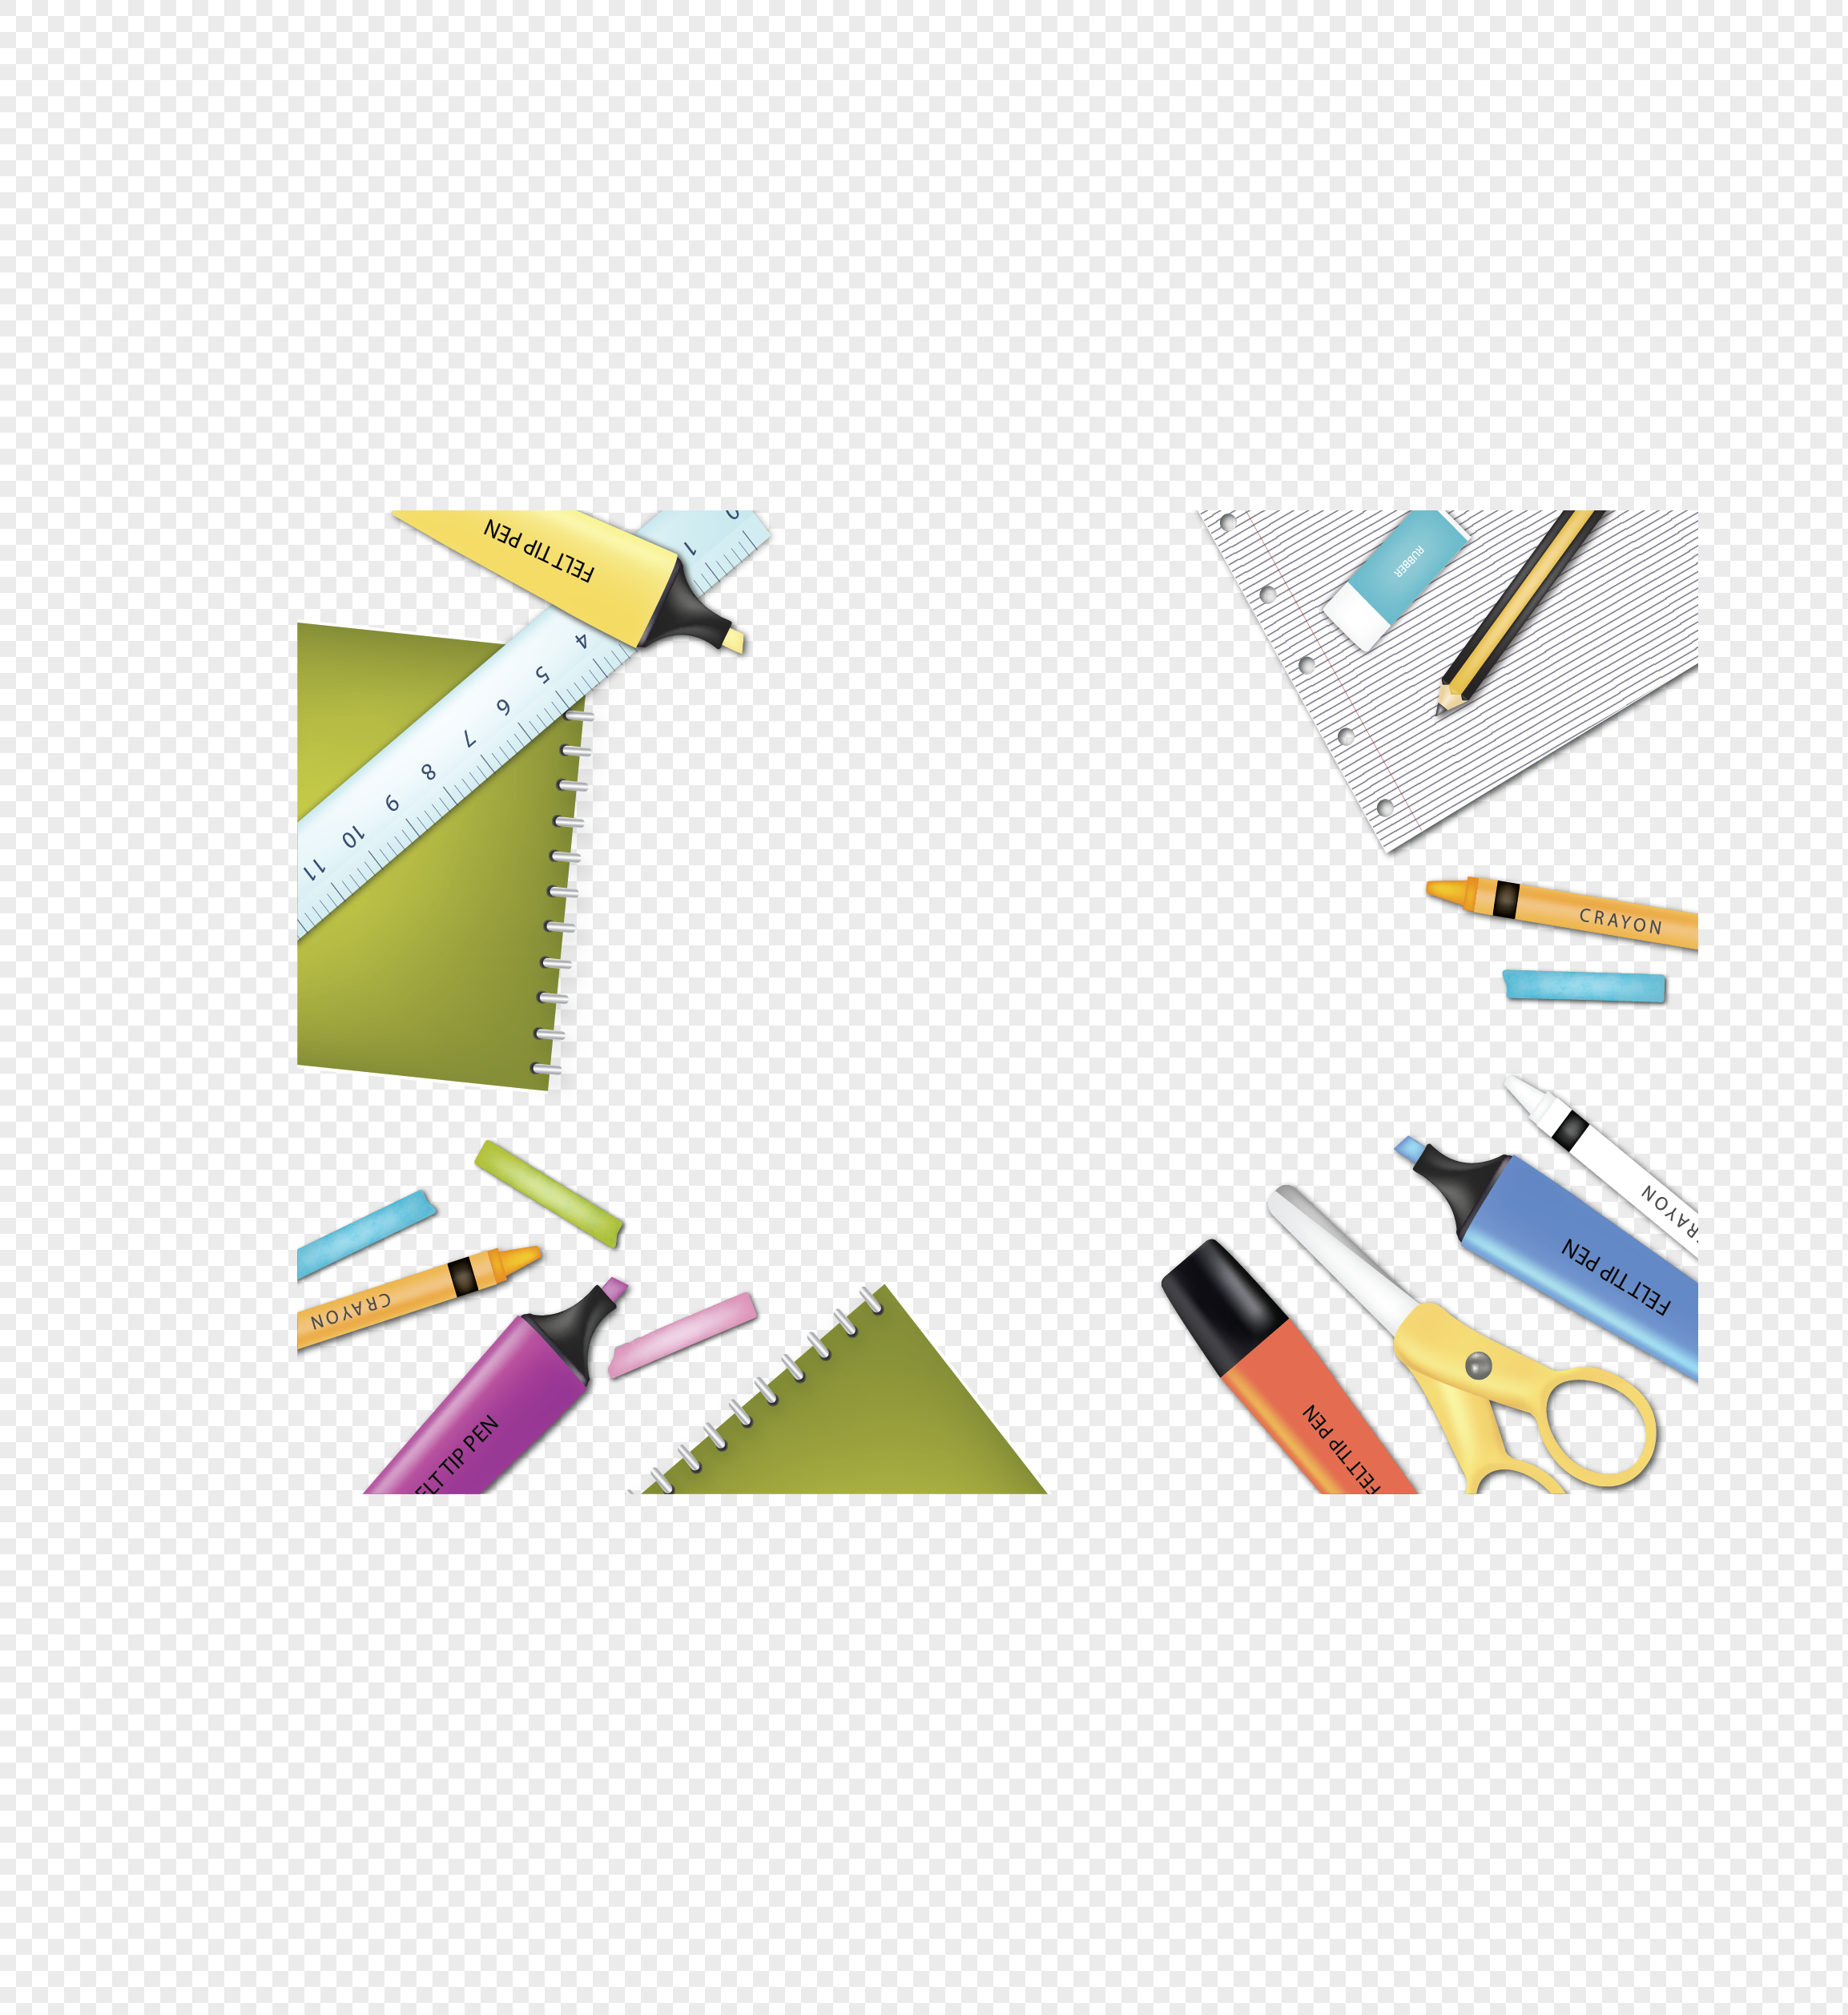 color cartoon stationery border png image picture free download